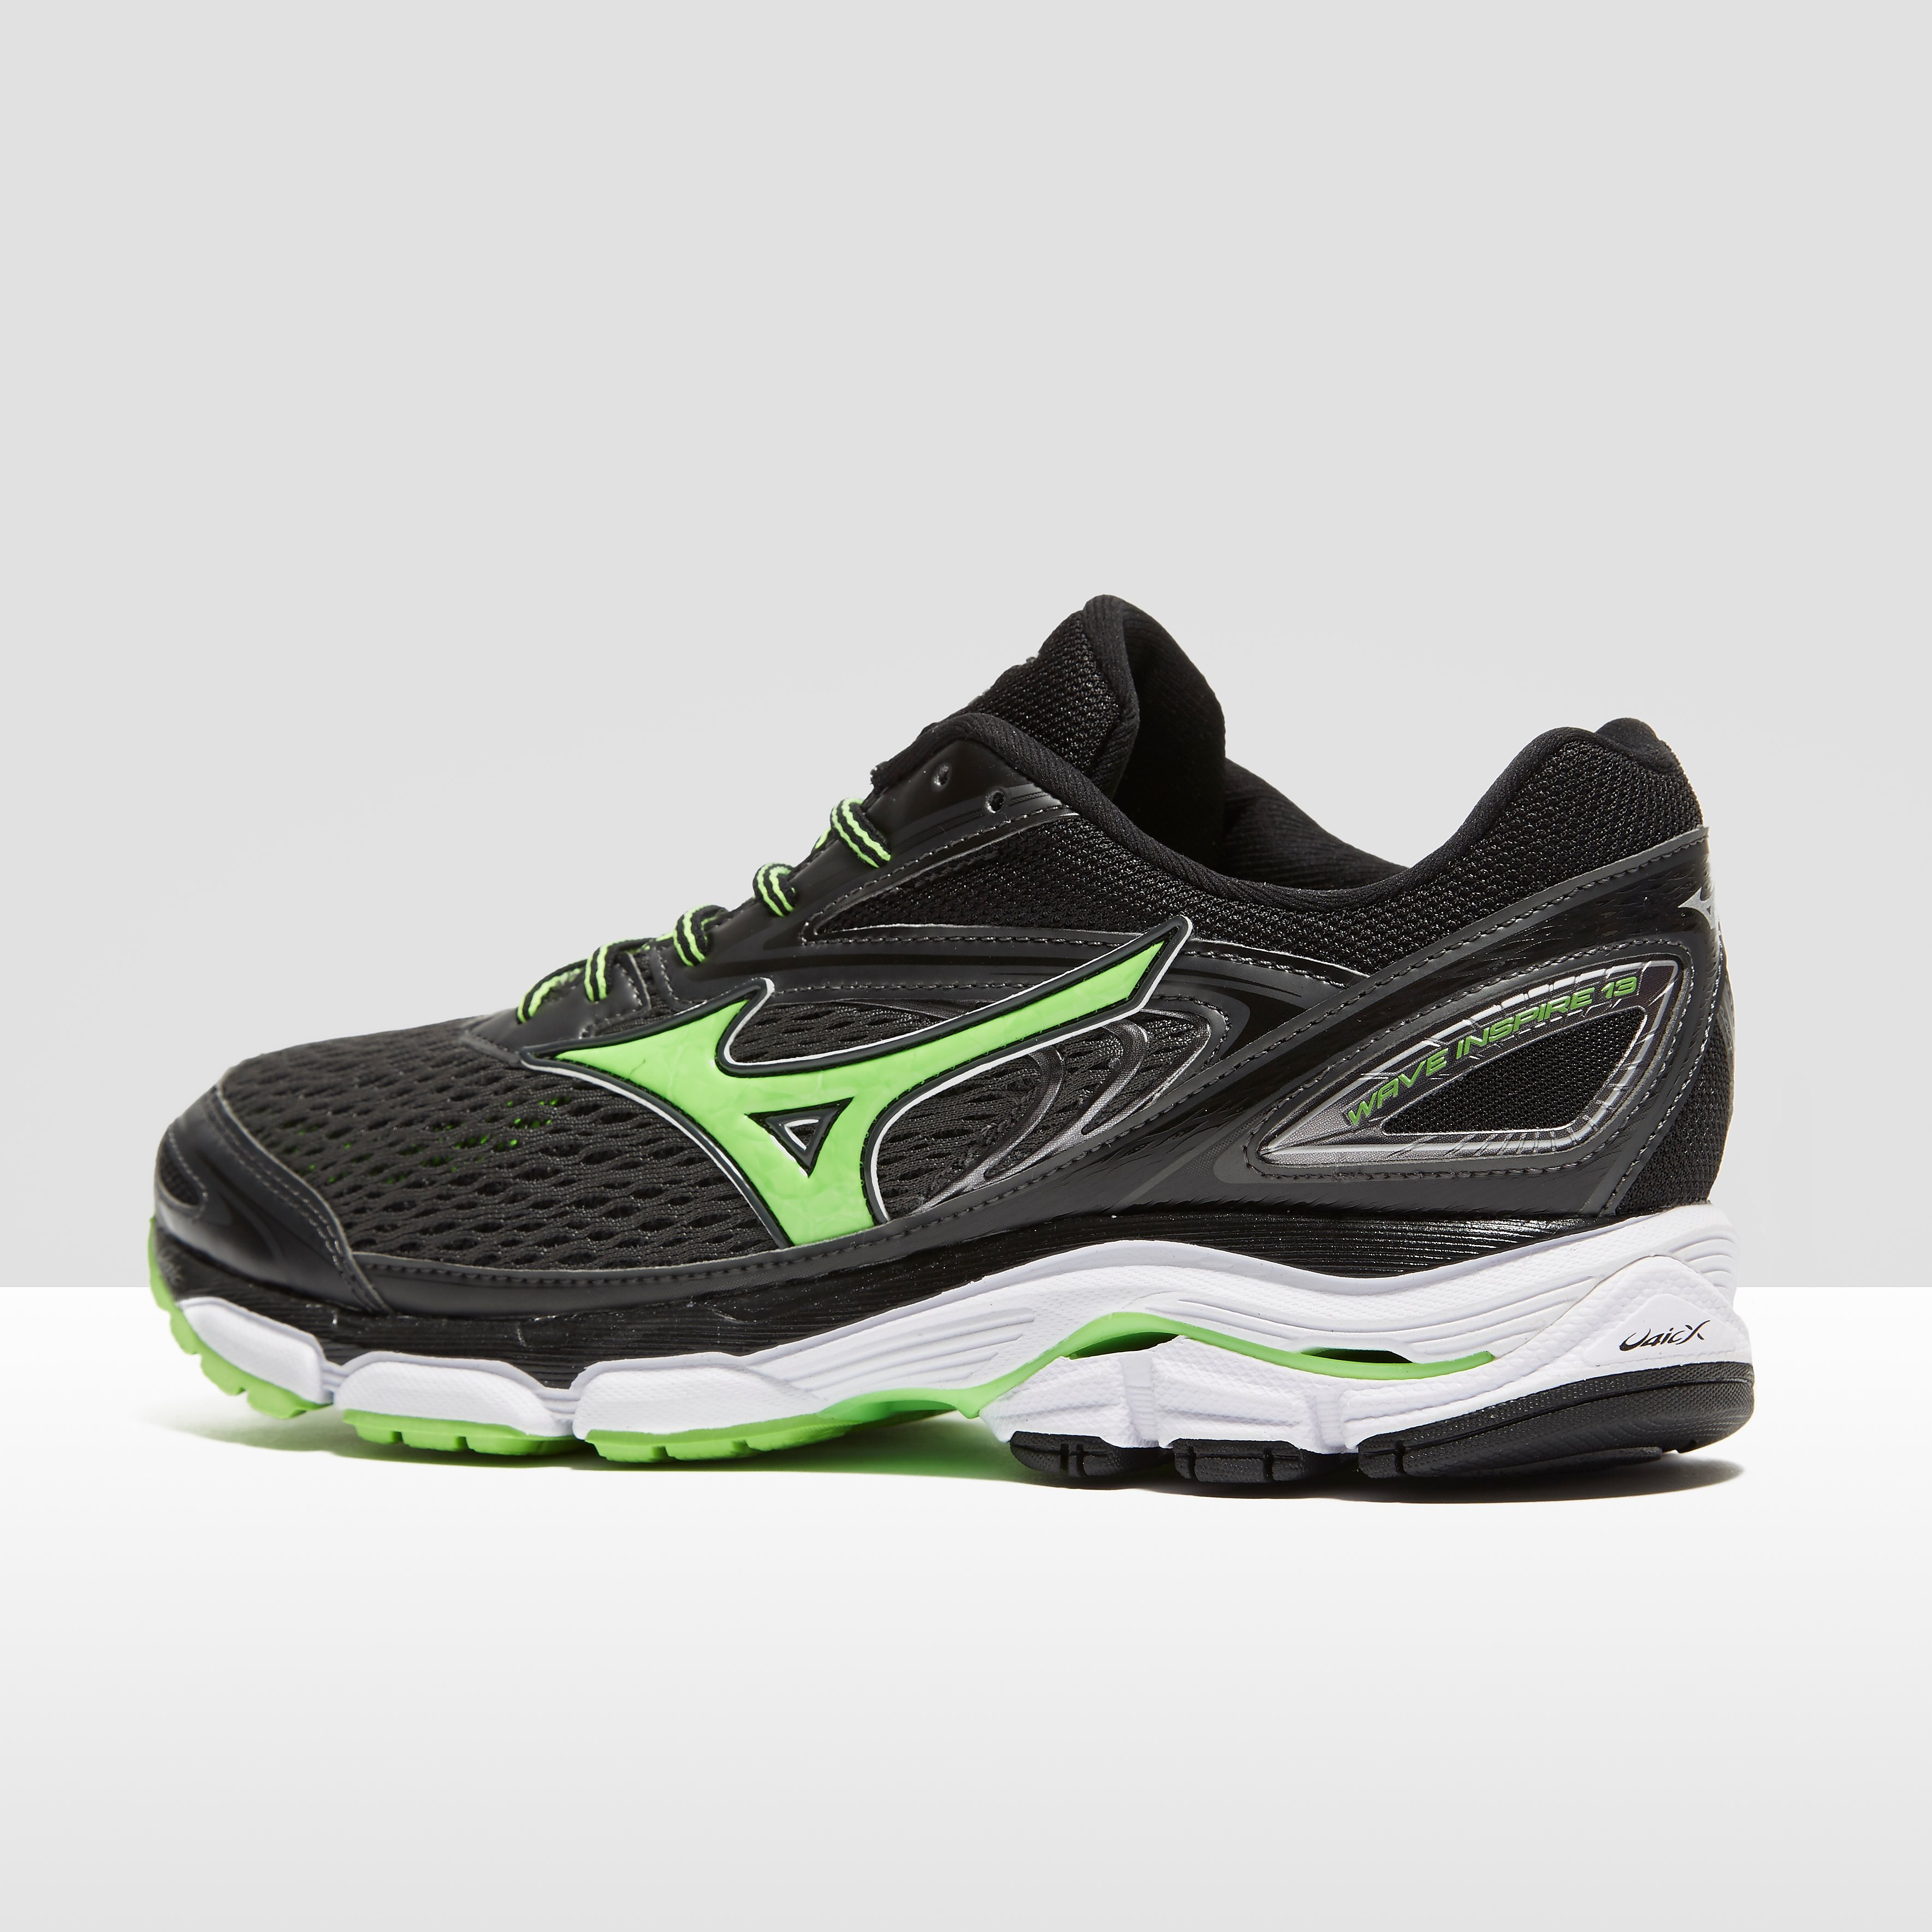 Mizuno Wave Inspire 13 Men's Running Shoes